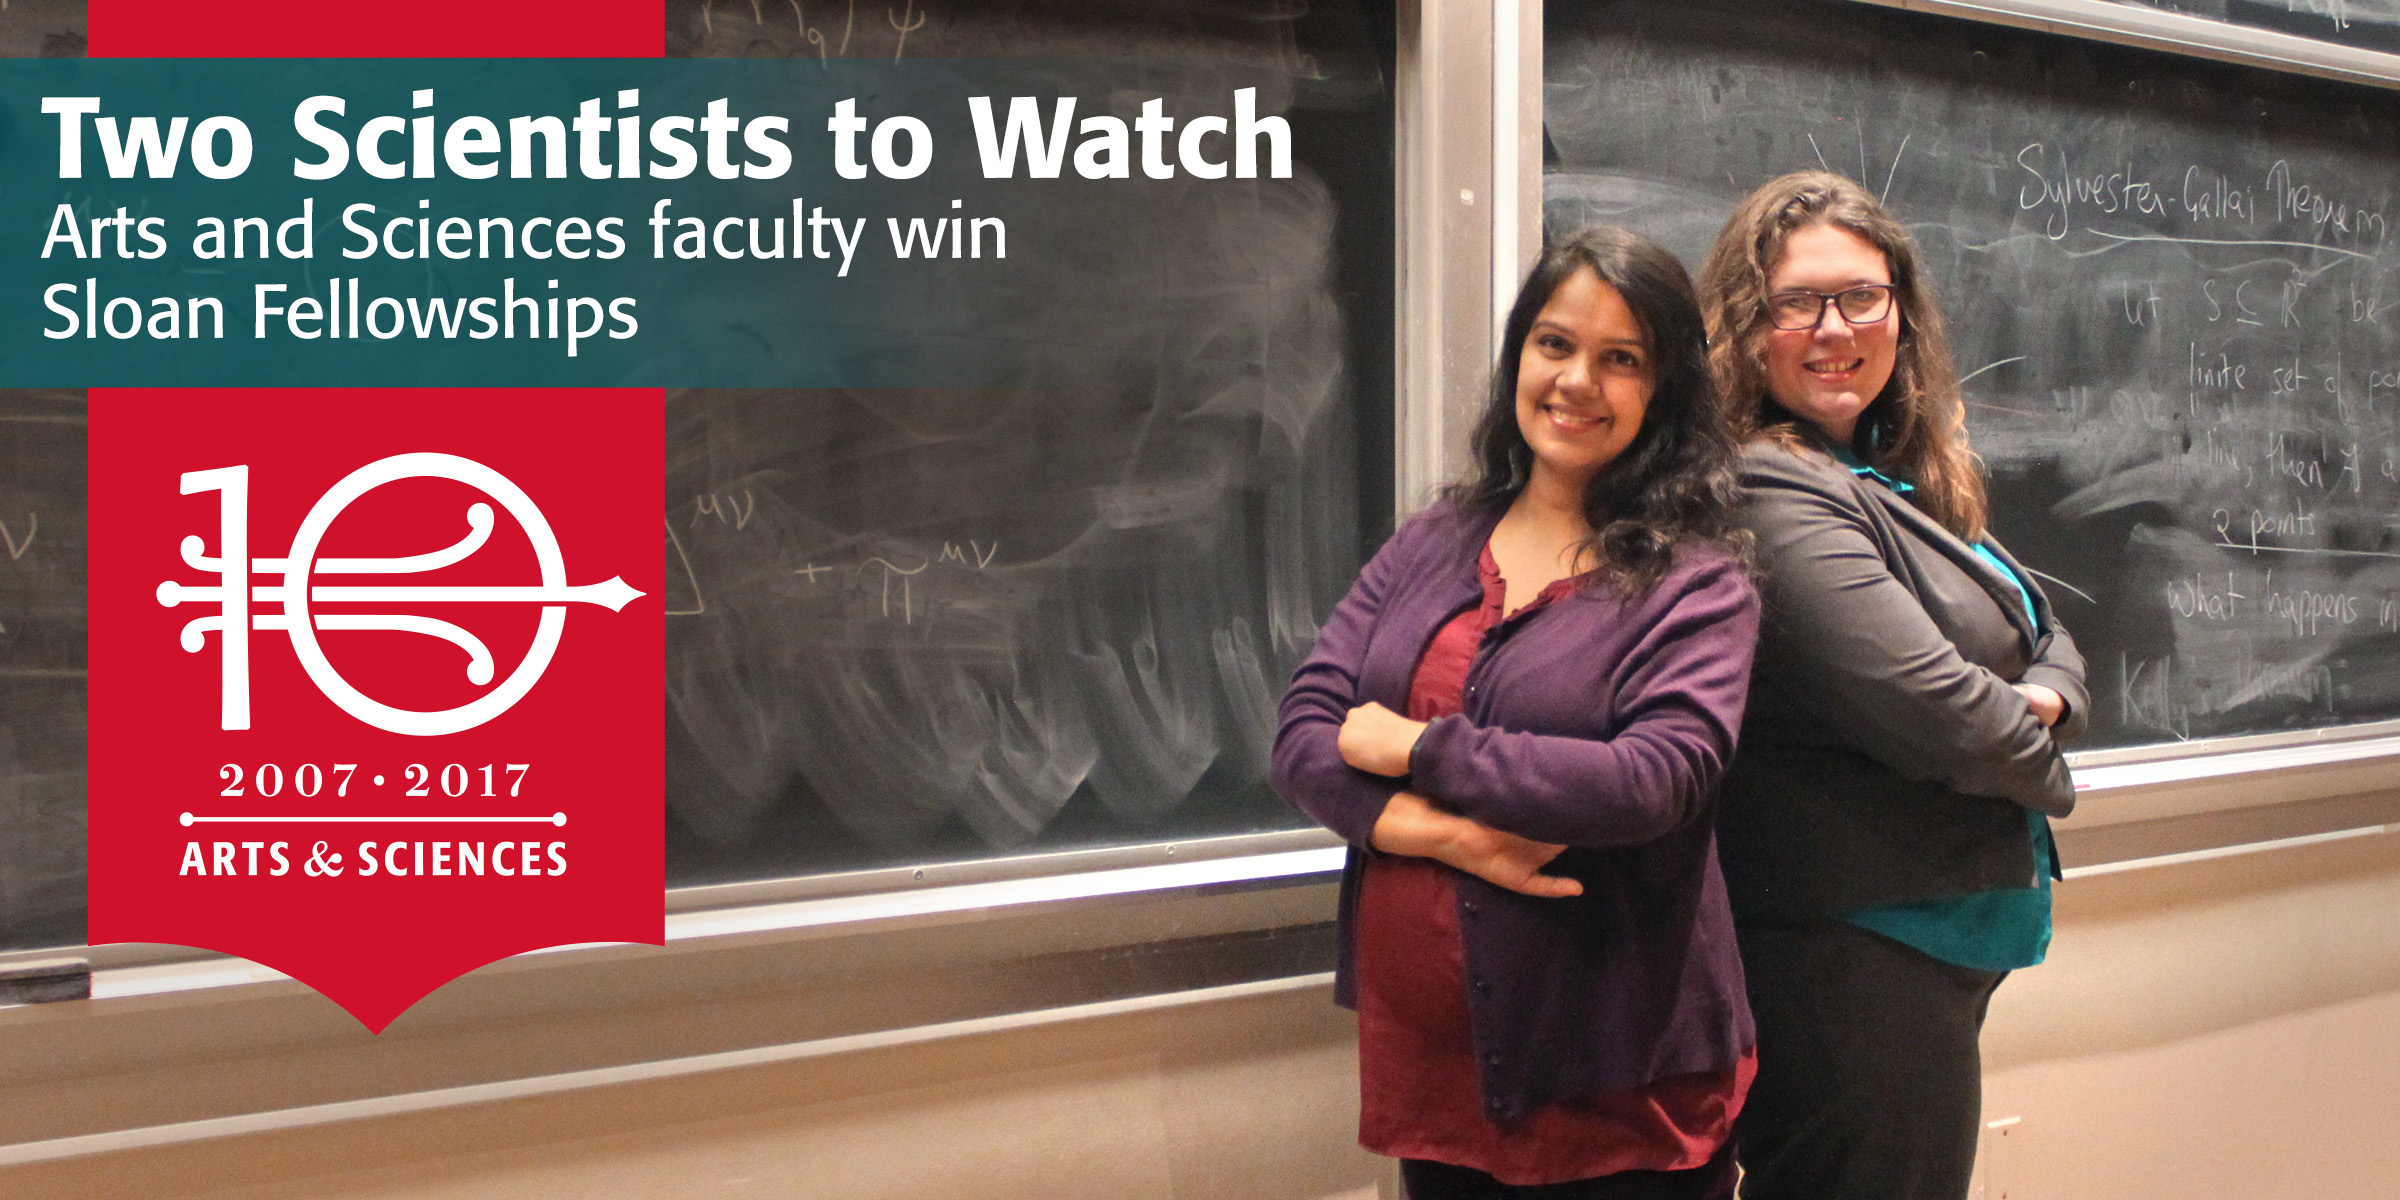 Two Scientists to Watch: Arts and Sciences faculty win Sloan Fellowships